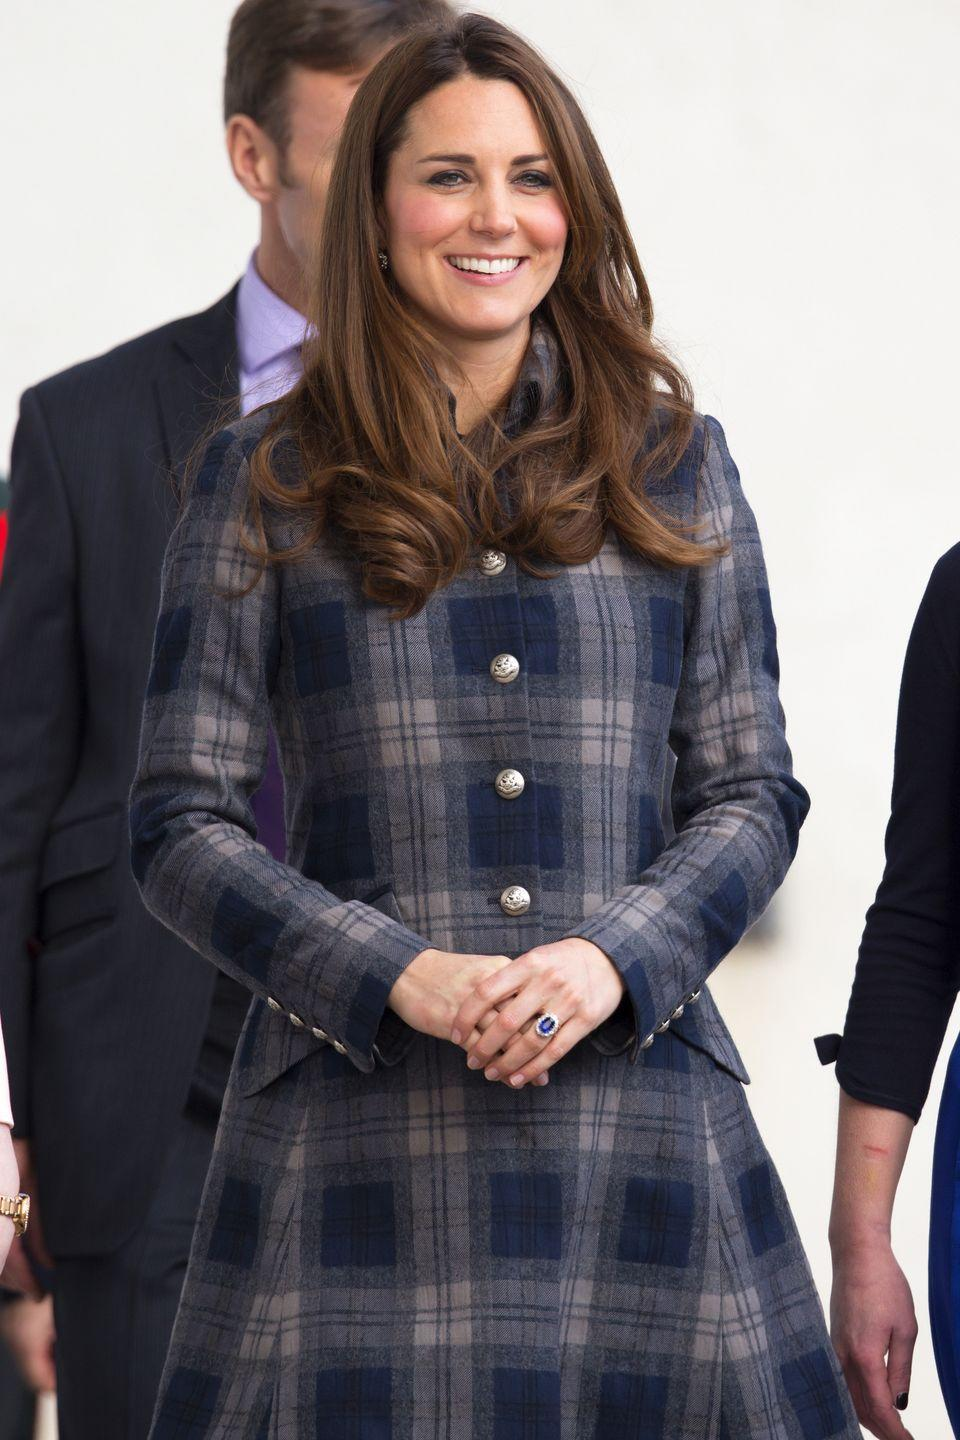 <p>Kate Middleton also loves bundling up in plaid once the weather cools off.</p>